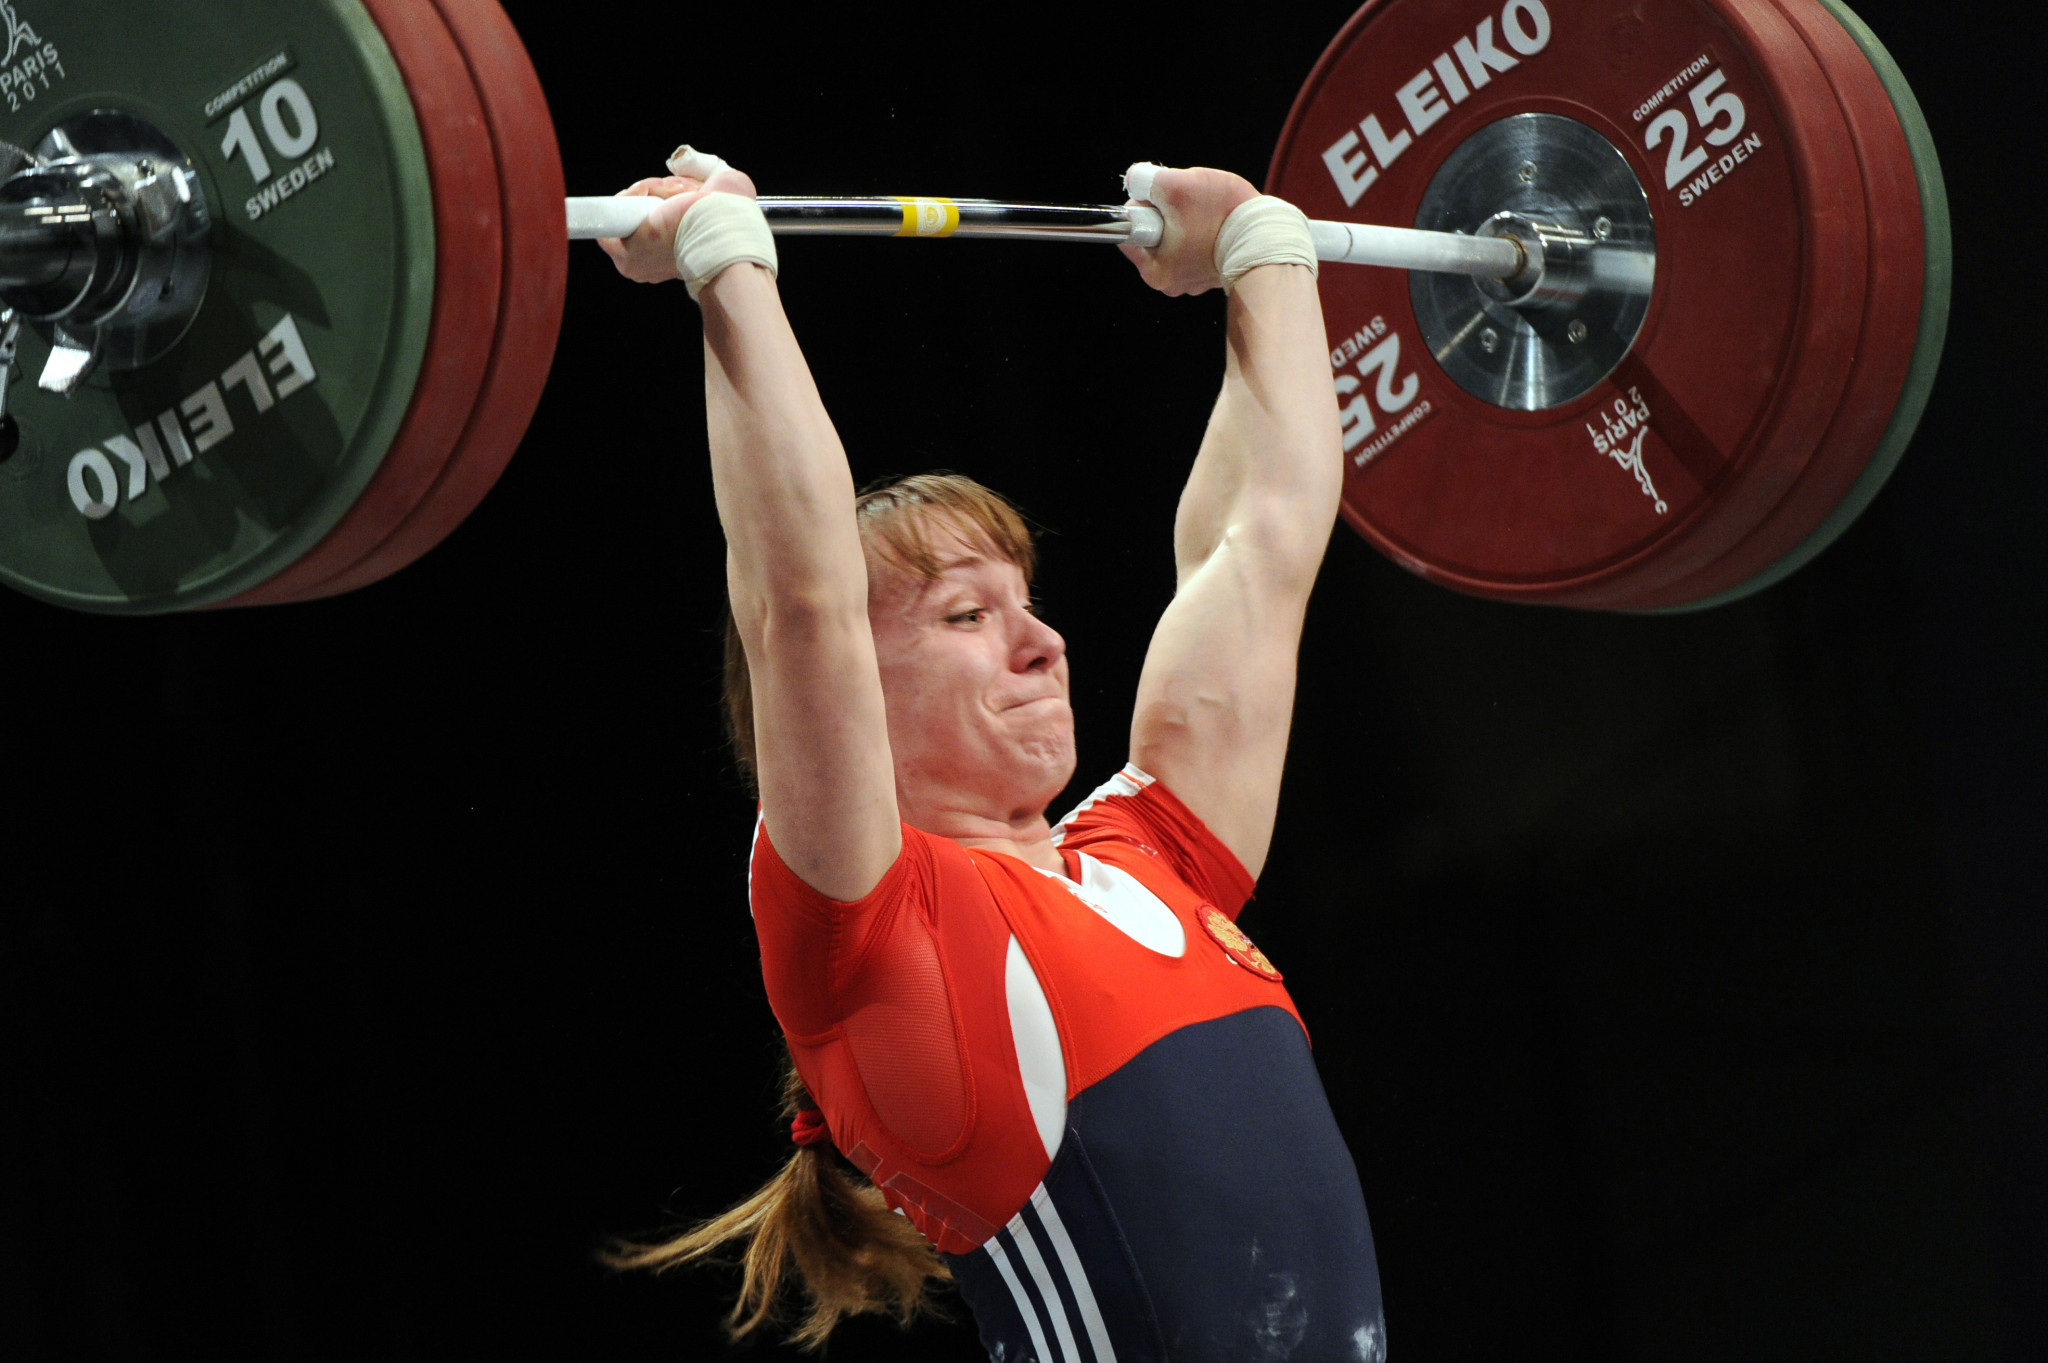 Marina Shainova is among other Russian weightlifters to receive doping bans ©Getty Images